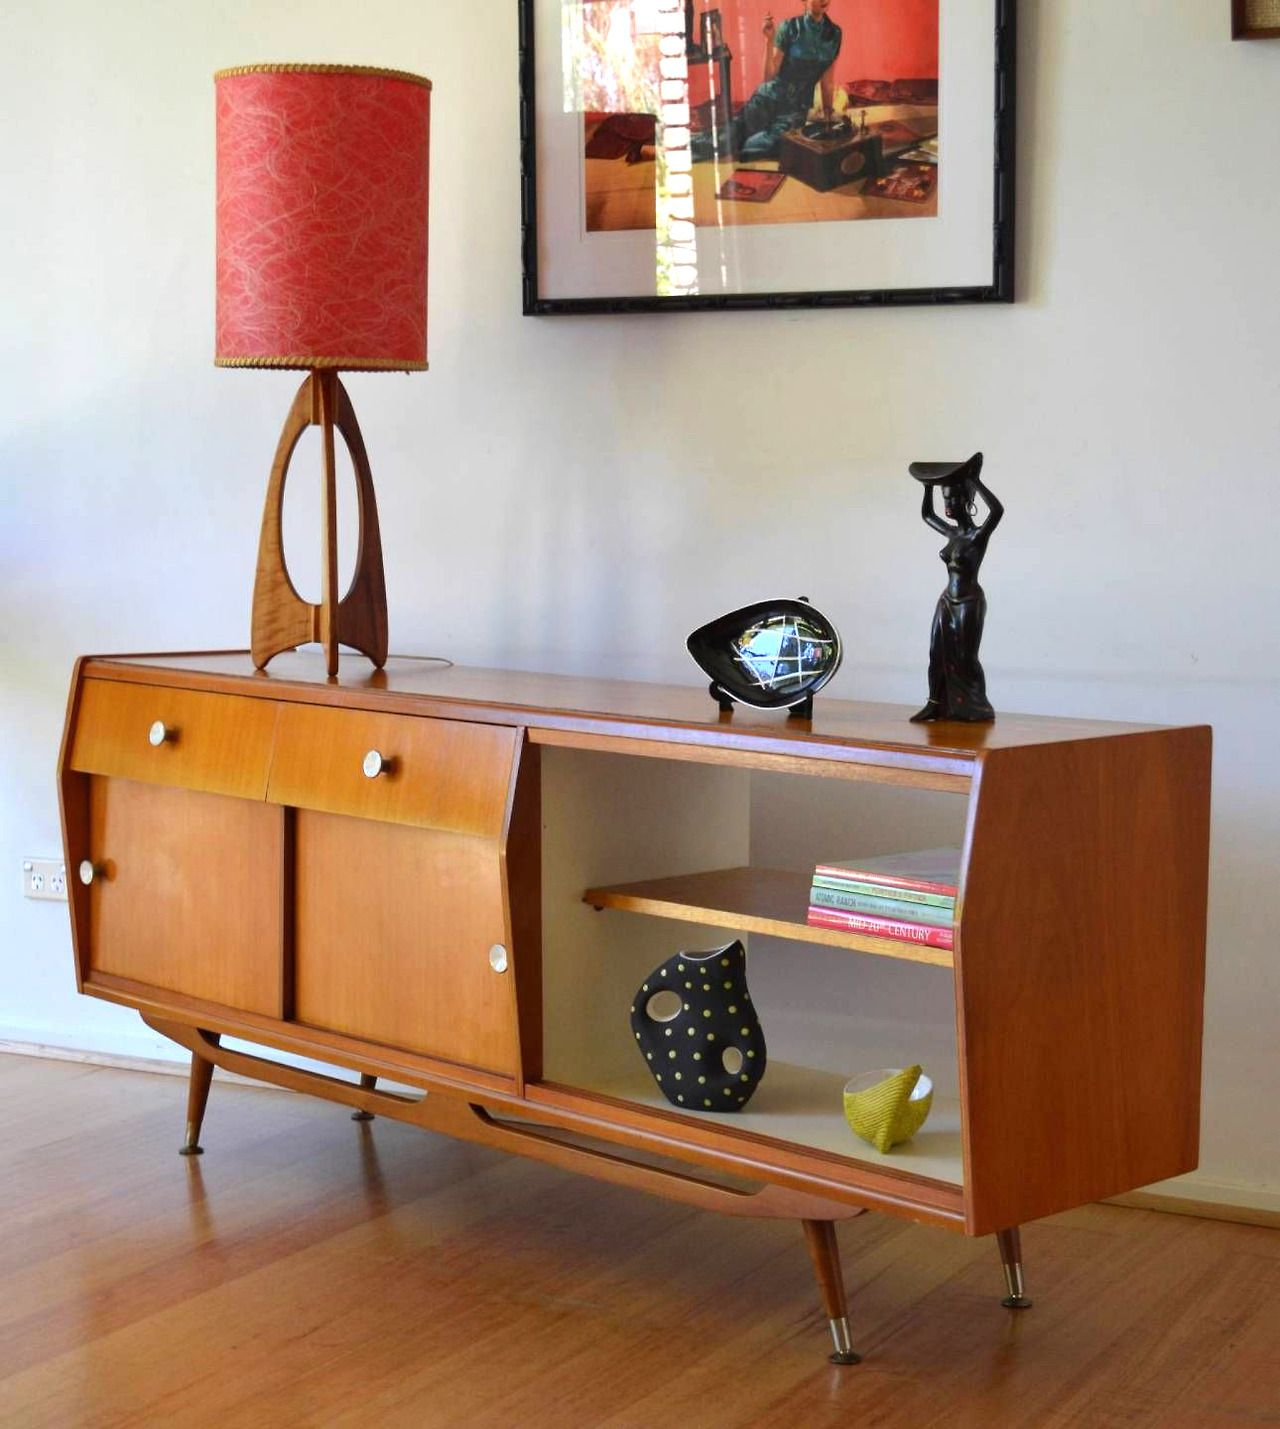 mid century modern inspired furniture. Mid-century Furniture: This Modern Credenza Will Make A Statement In Your Home Decor Mid Century Inspired Furniture T